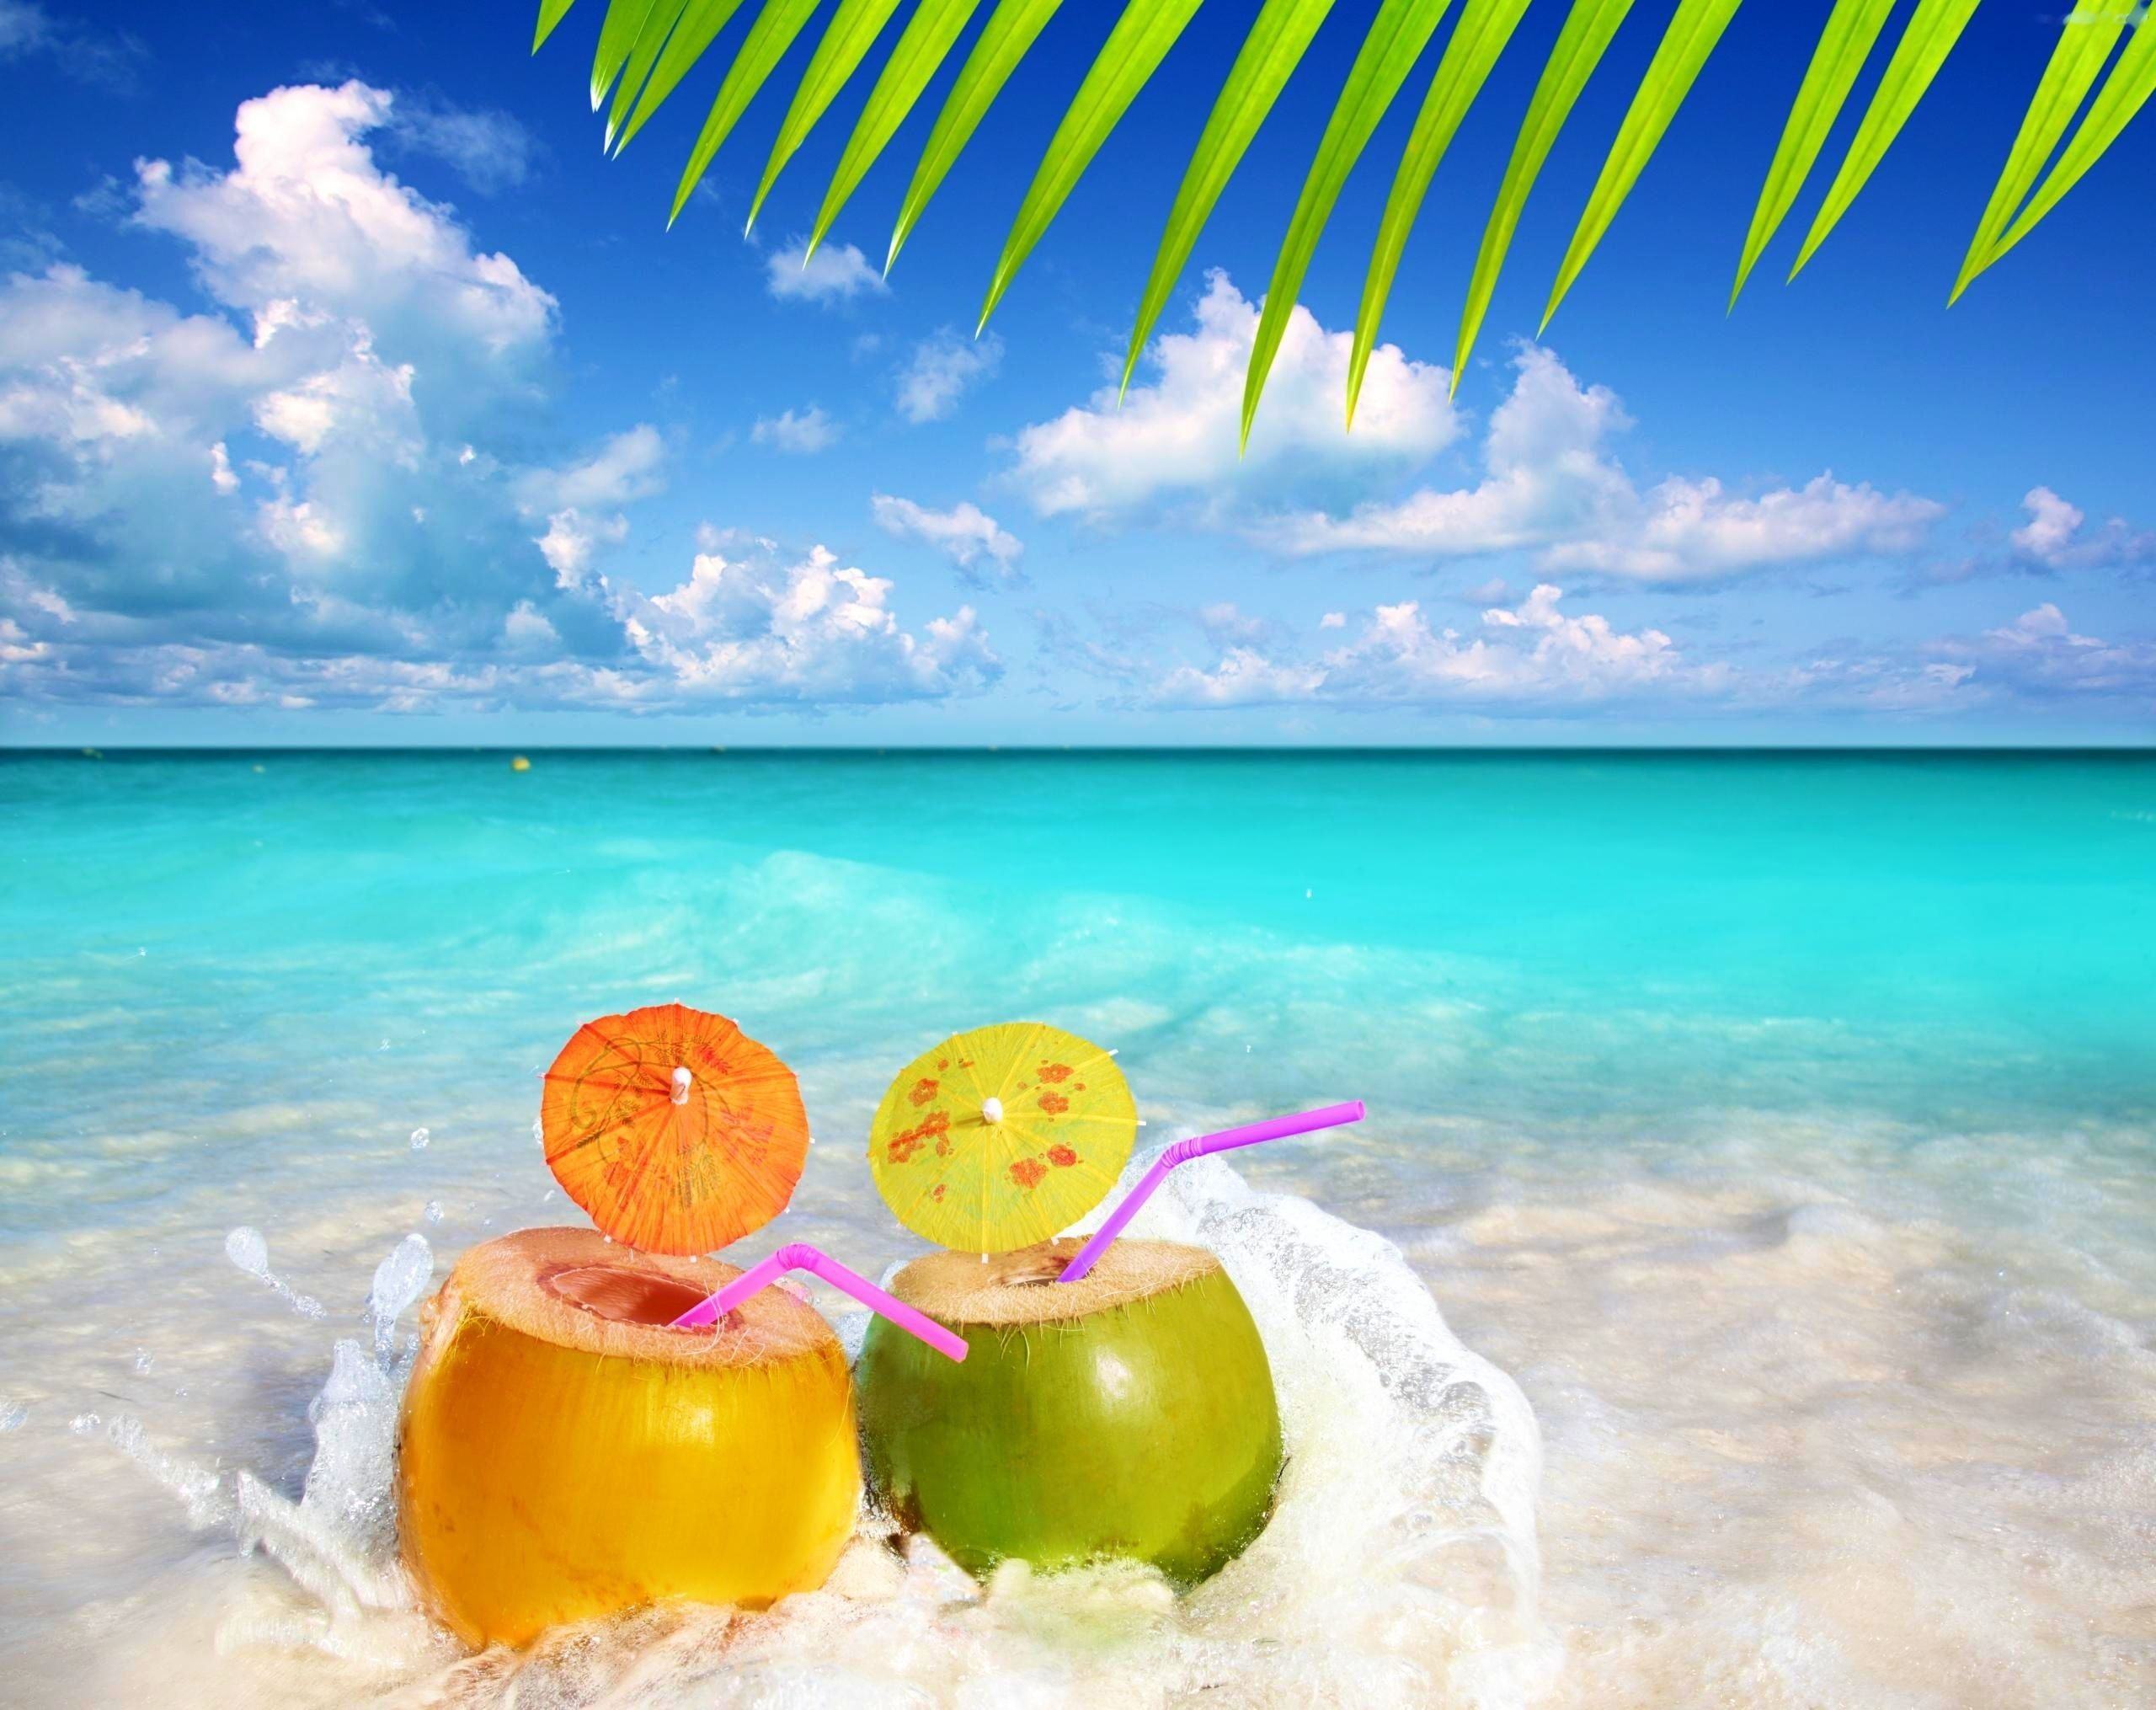 Fruit Water Snacks Sea Summer Palm Beach Wallpaper - Summer Beach Desktop Backgrounds - HD Wallpaper